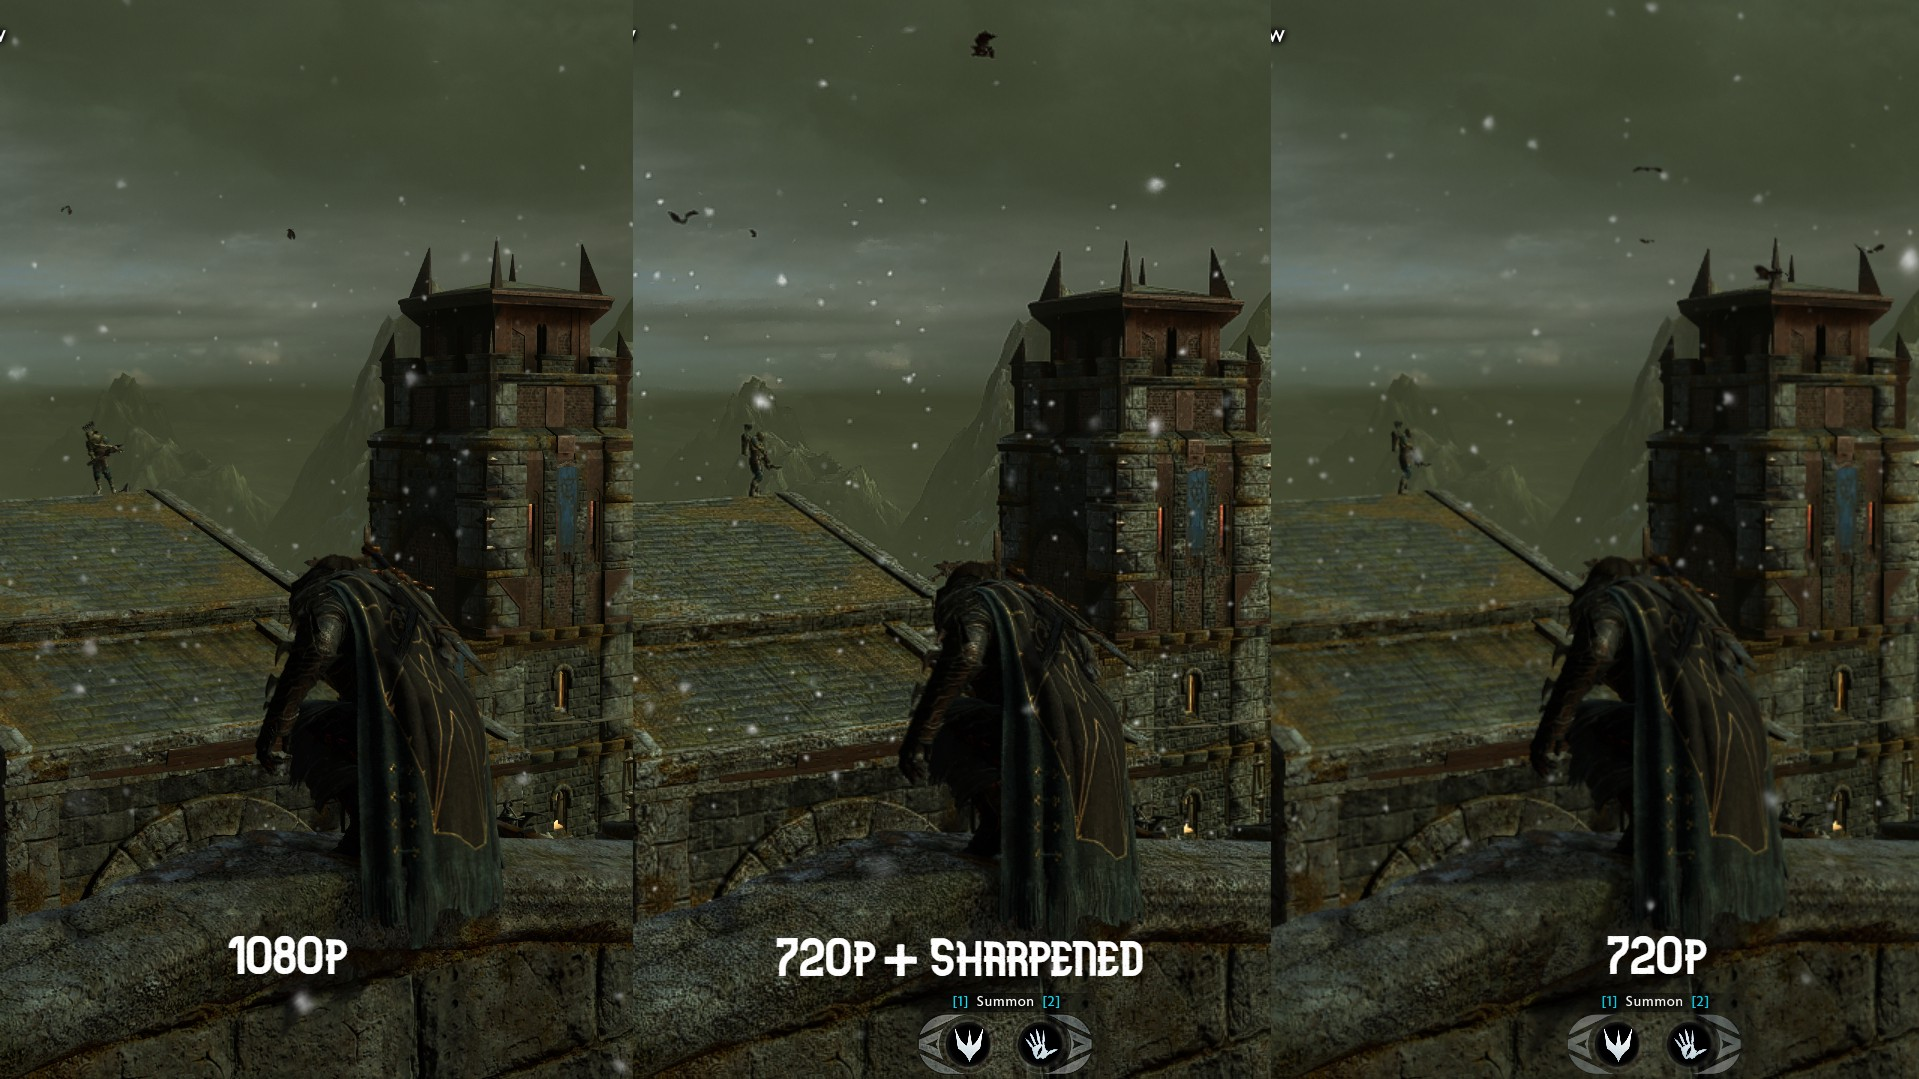 Nvidia Image Sharpening Budget Gamers Guide To Squeezing Higher Frame Rates With Minimal Visual Compromise Guide Analysis By Anjula Swarnitha Ratnayaka Medium